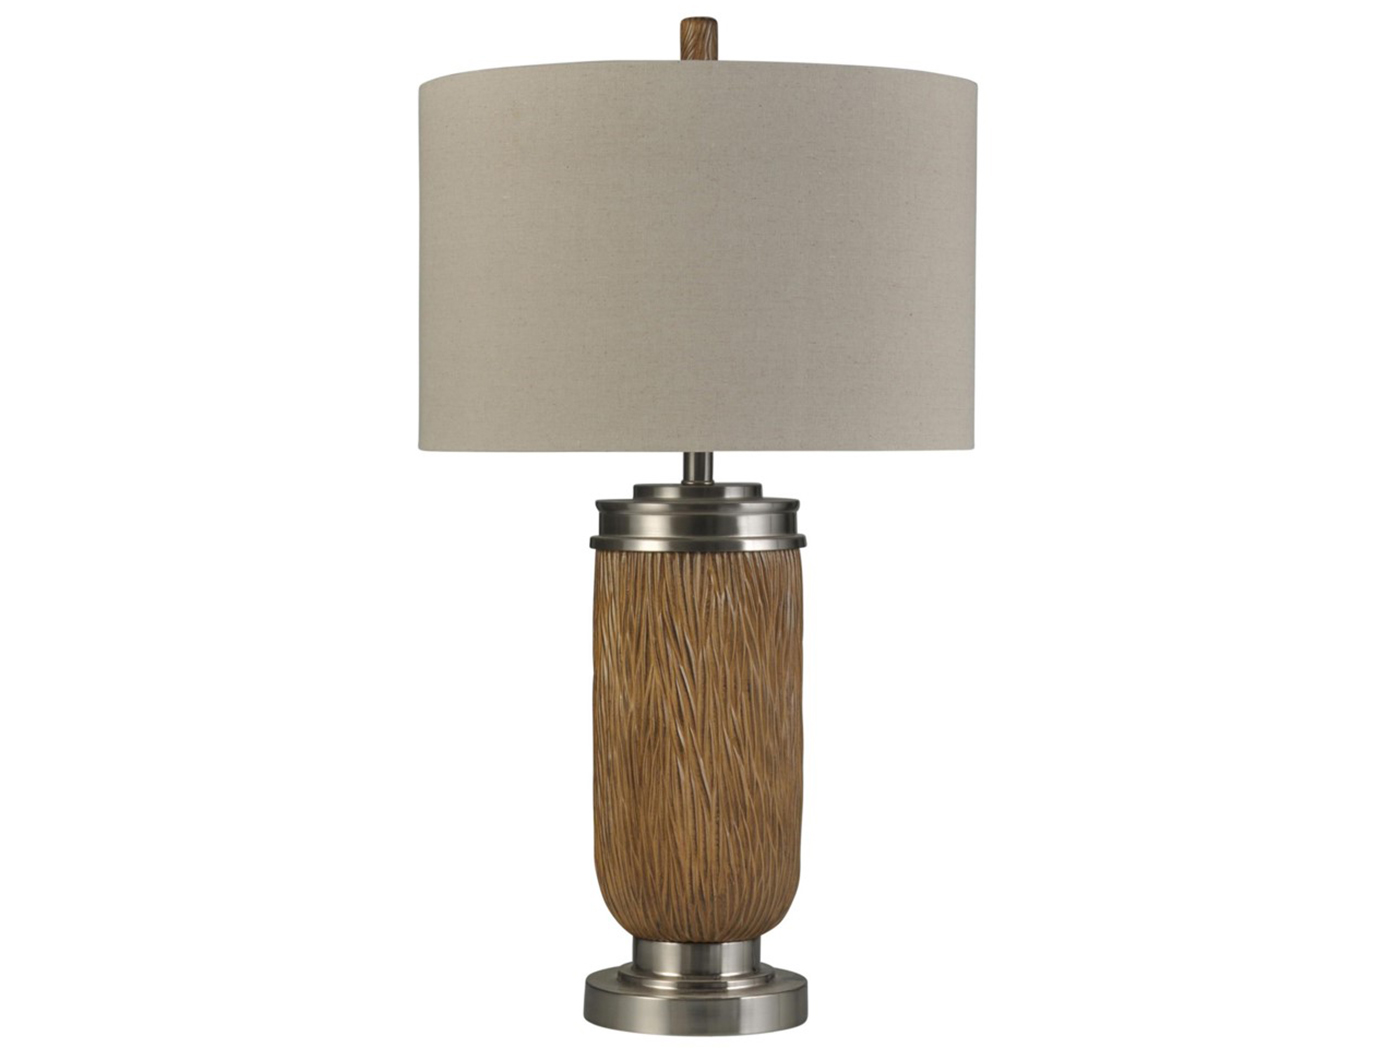 Tan and Chrome Table Lamp 34""